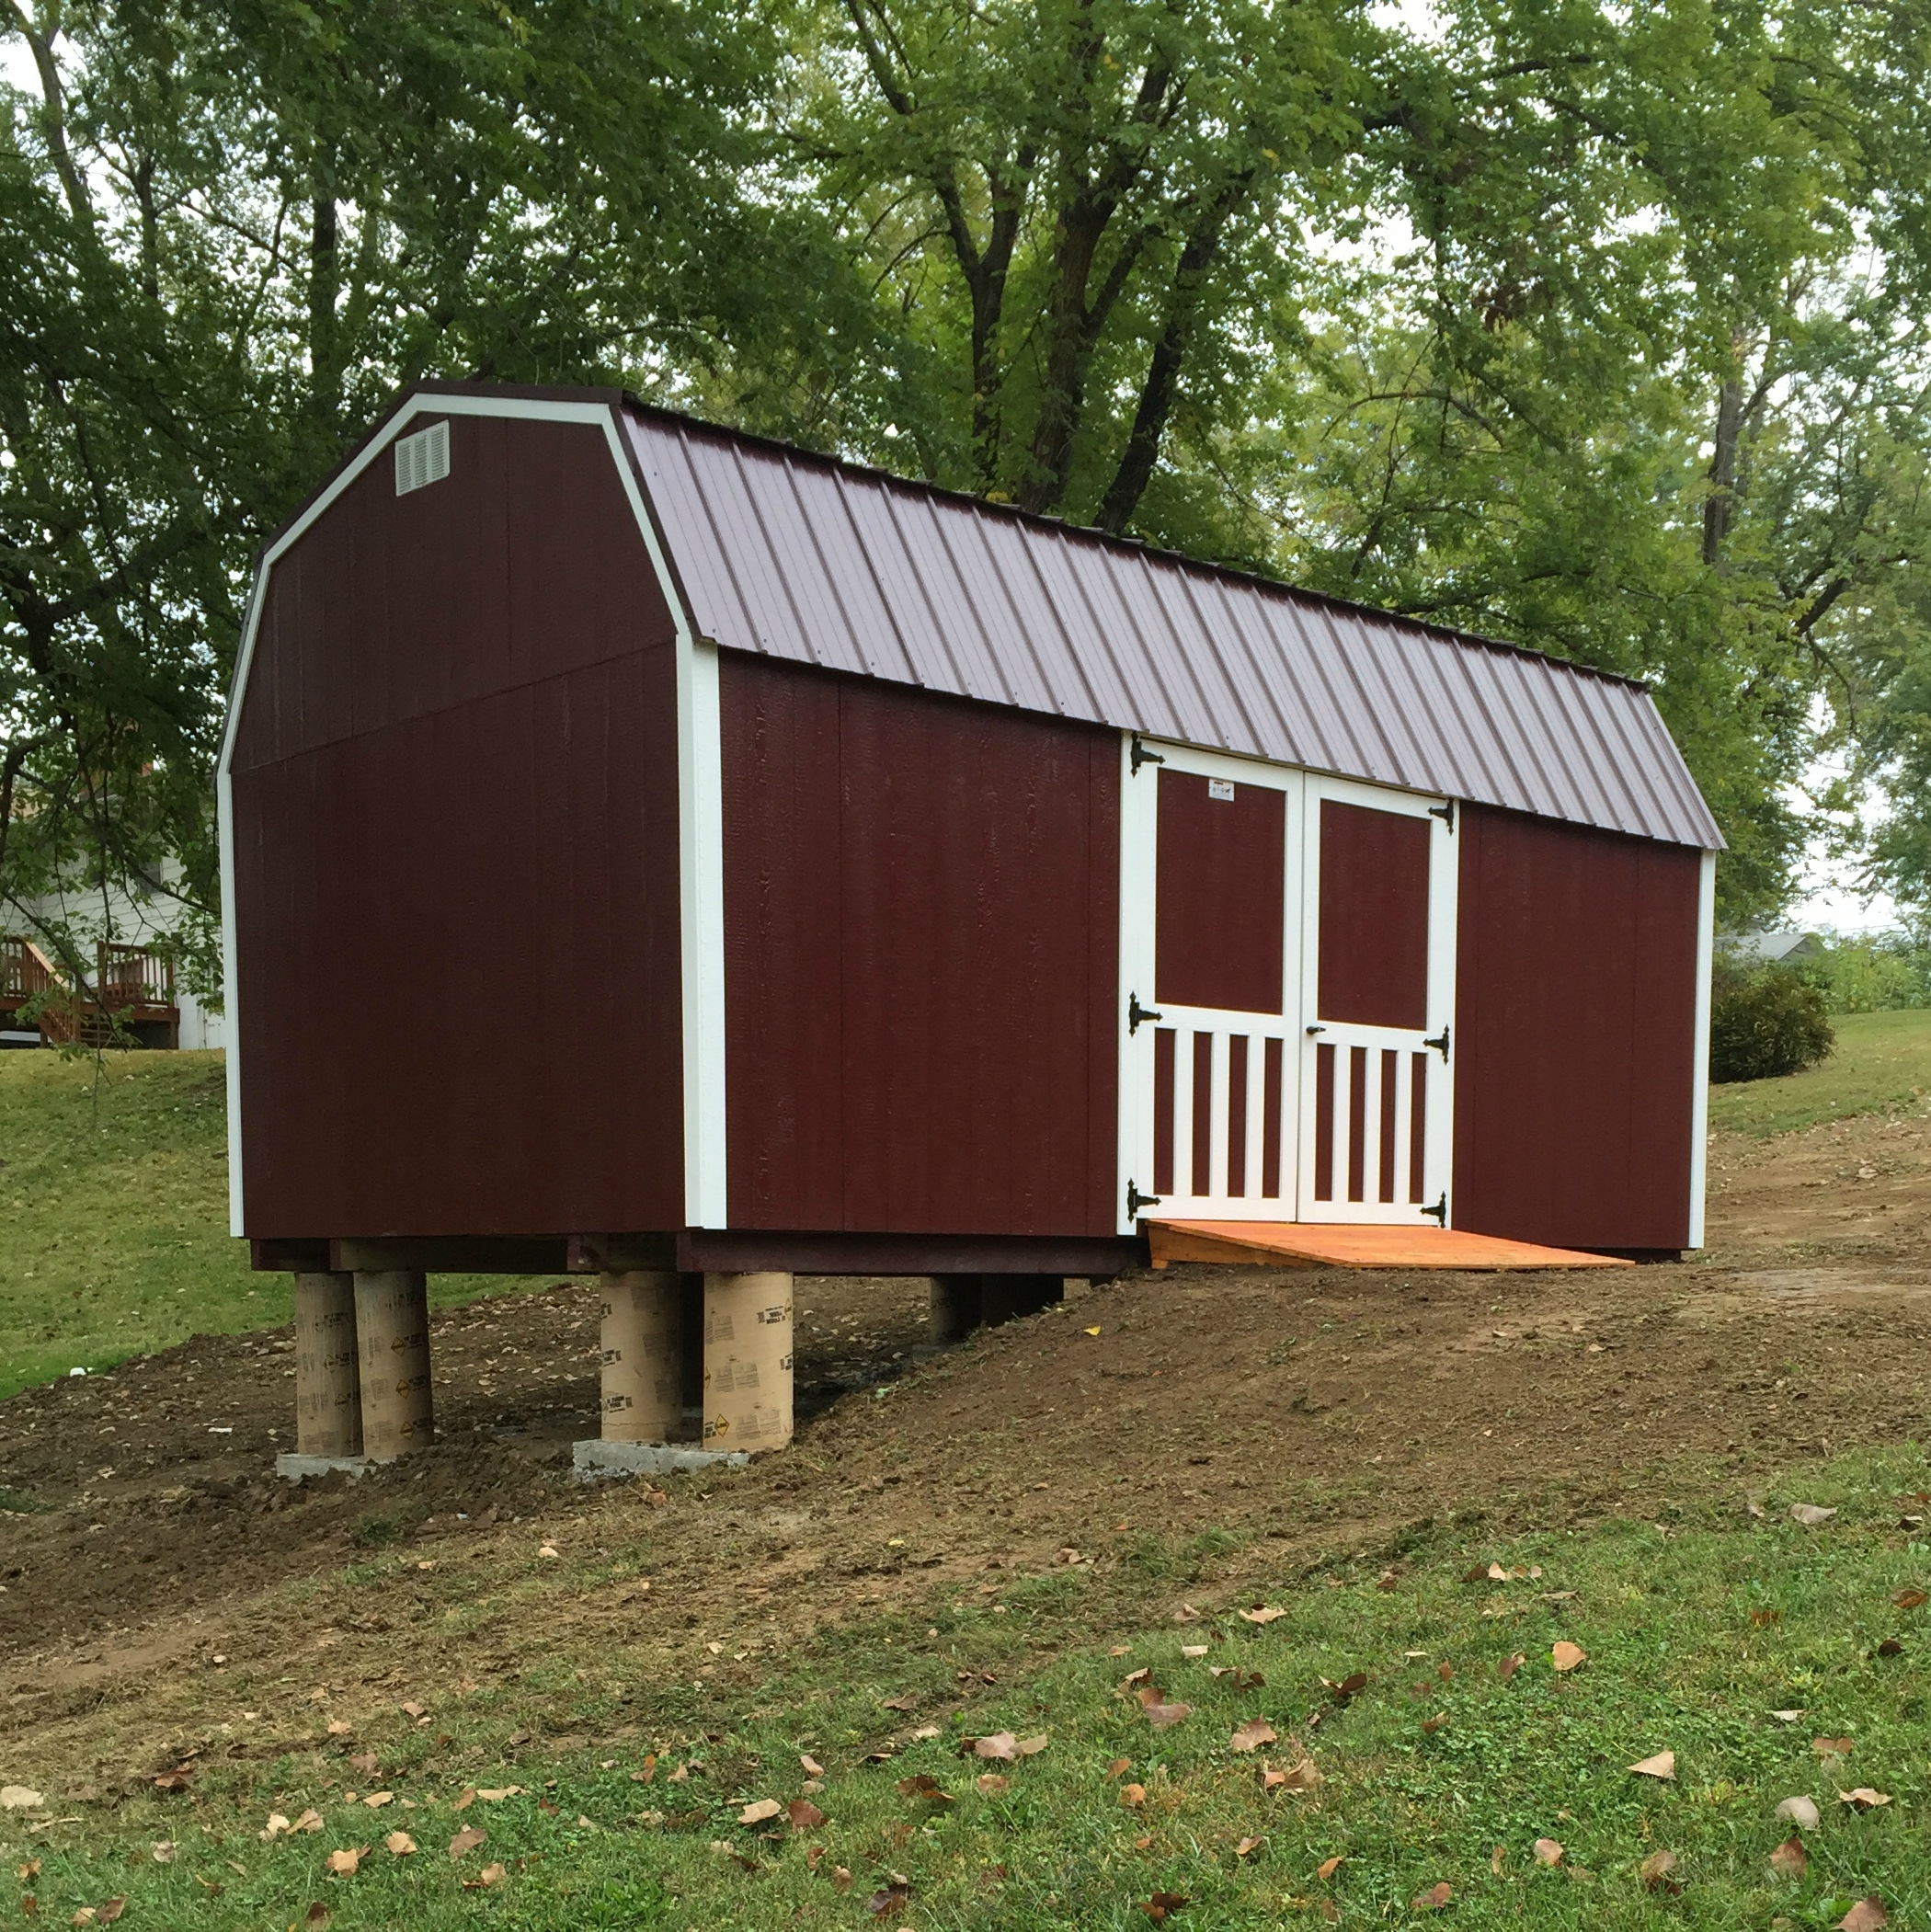 Portable Sheds And Houses : Foundation education gt portable buildings storage sheds